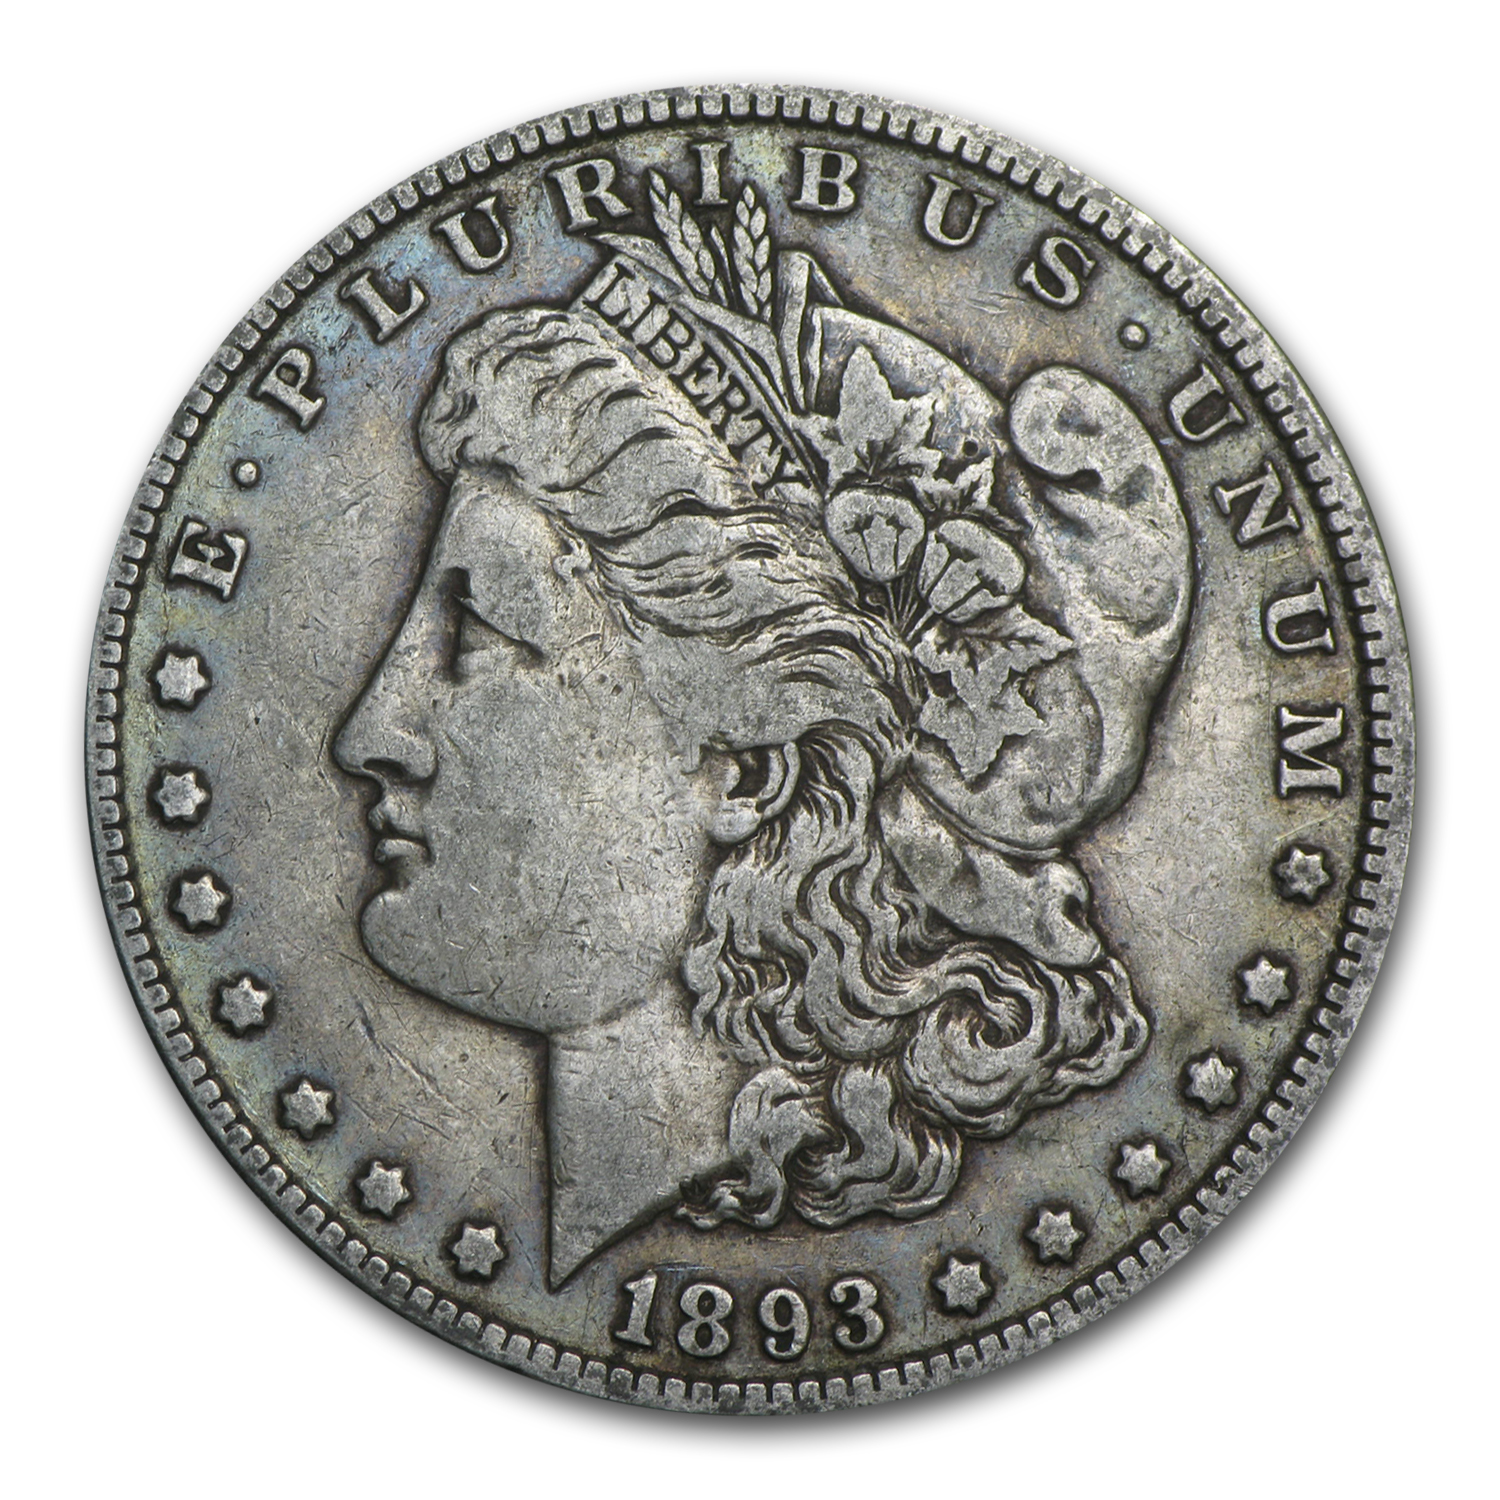 1893 Morgan Dollar - Very Fine